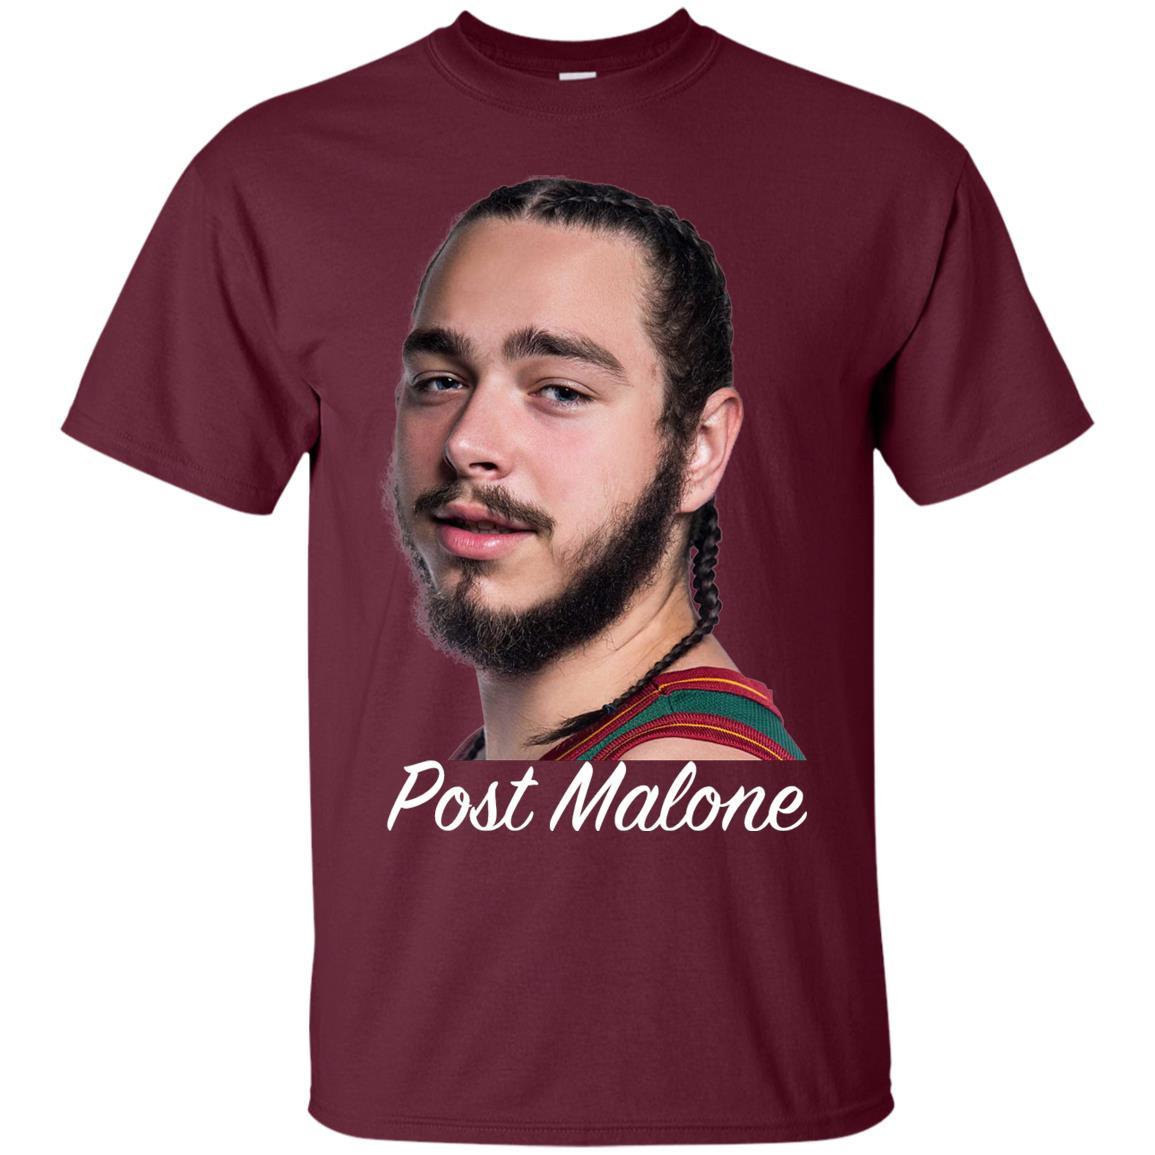 Post Malone White Iverson T-Shirt Maroon / 5XL